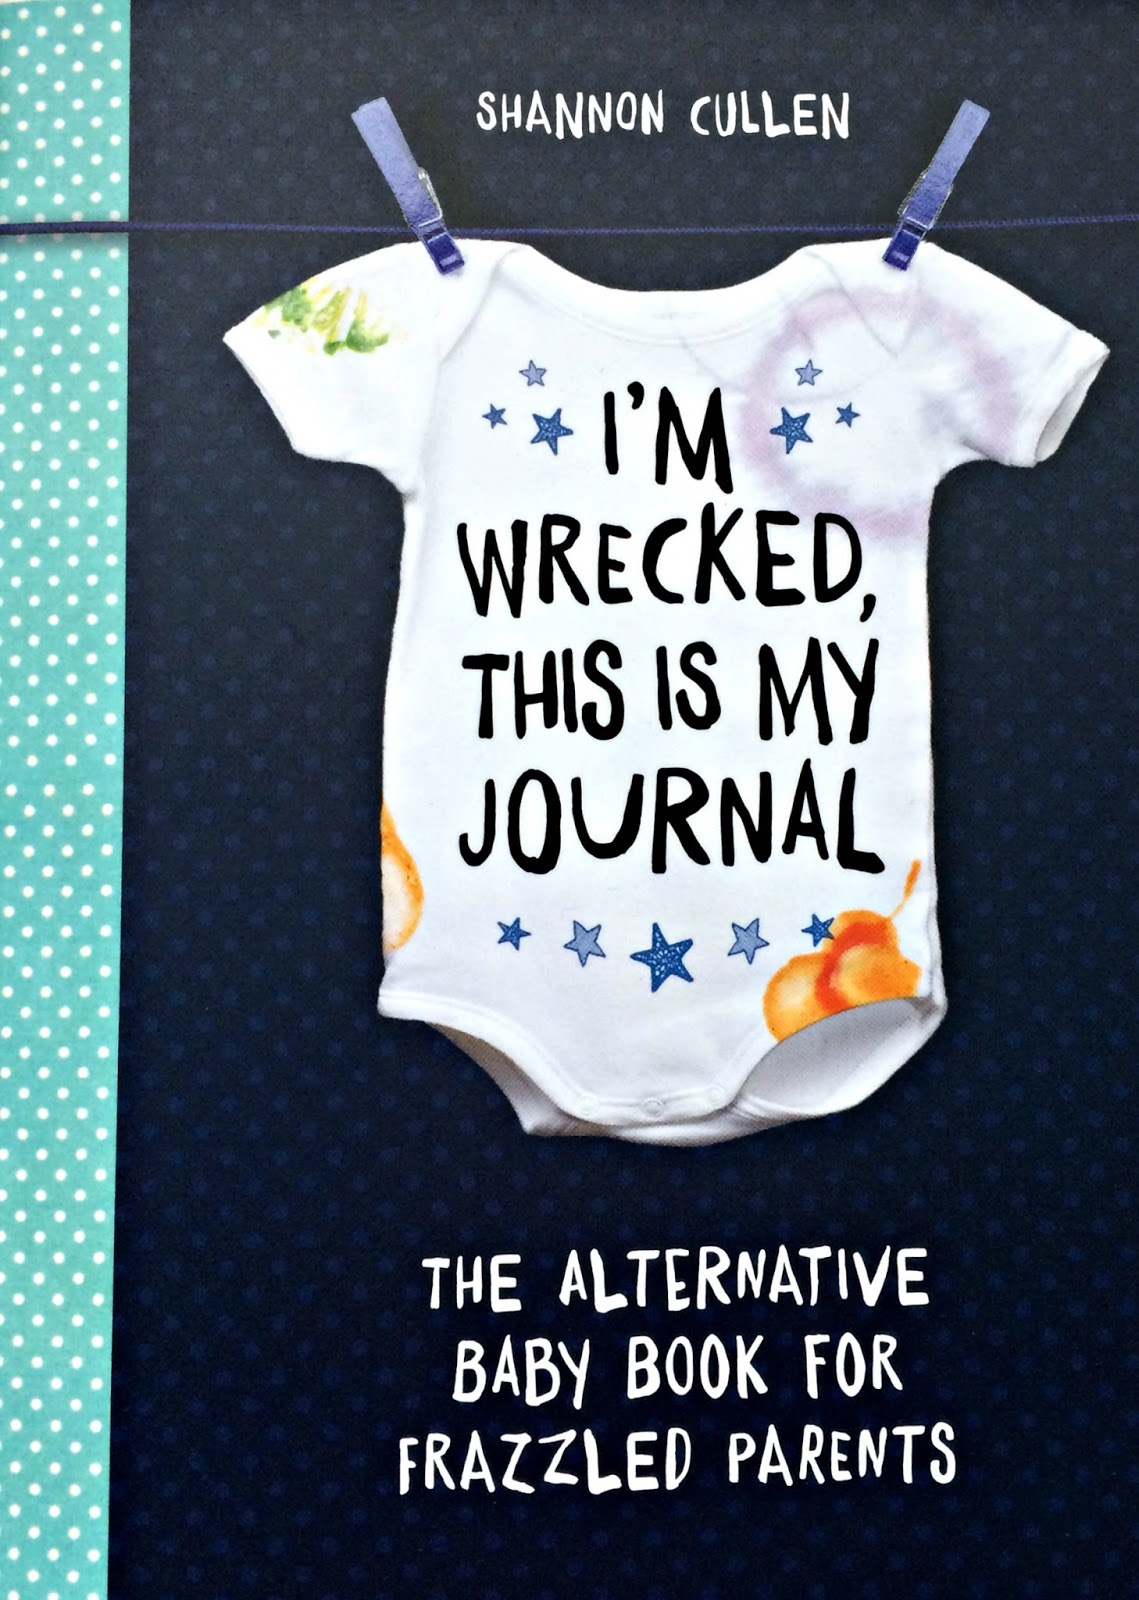 I'm Wrecked This Is My Journal The Alternative Baby Book For Frazzled Parents by Shannon Cullen front cover